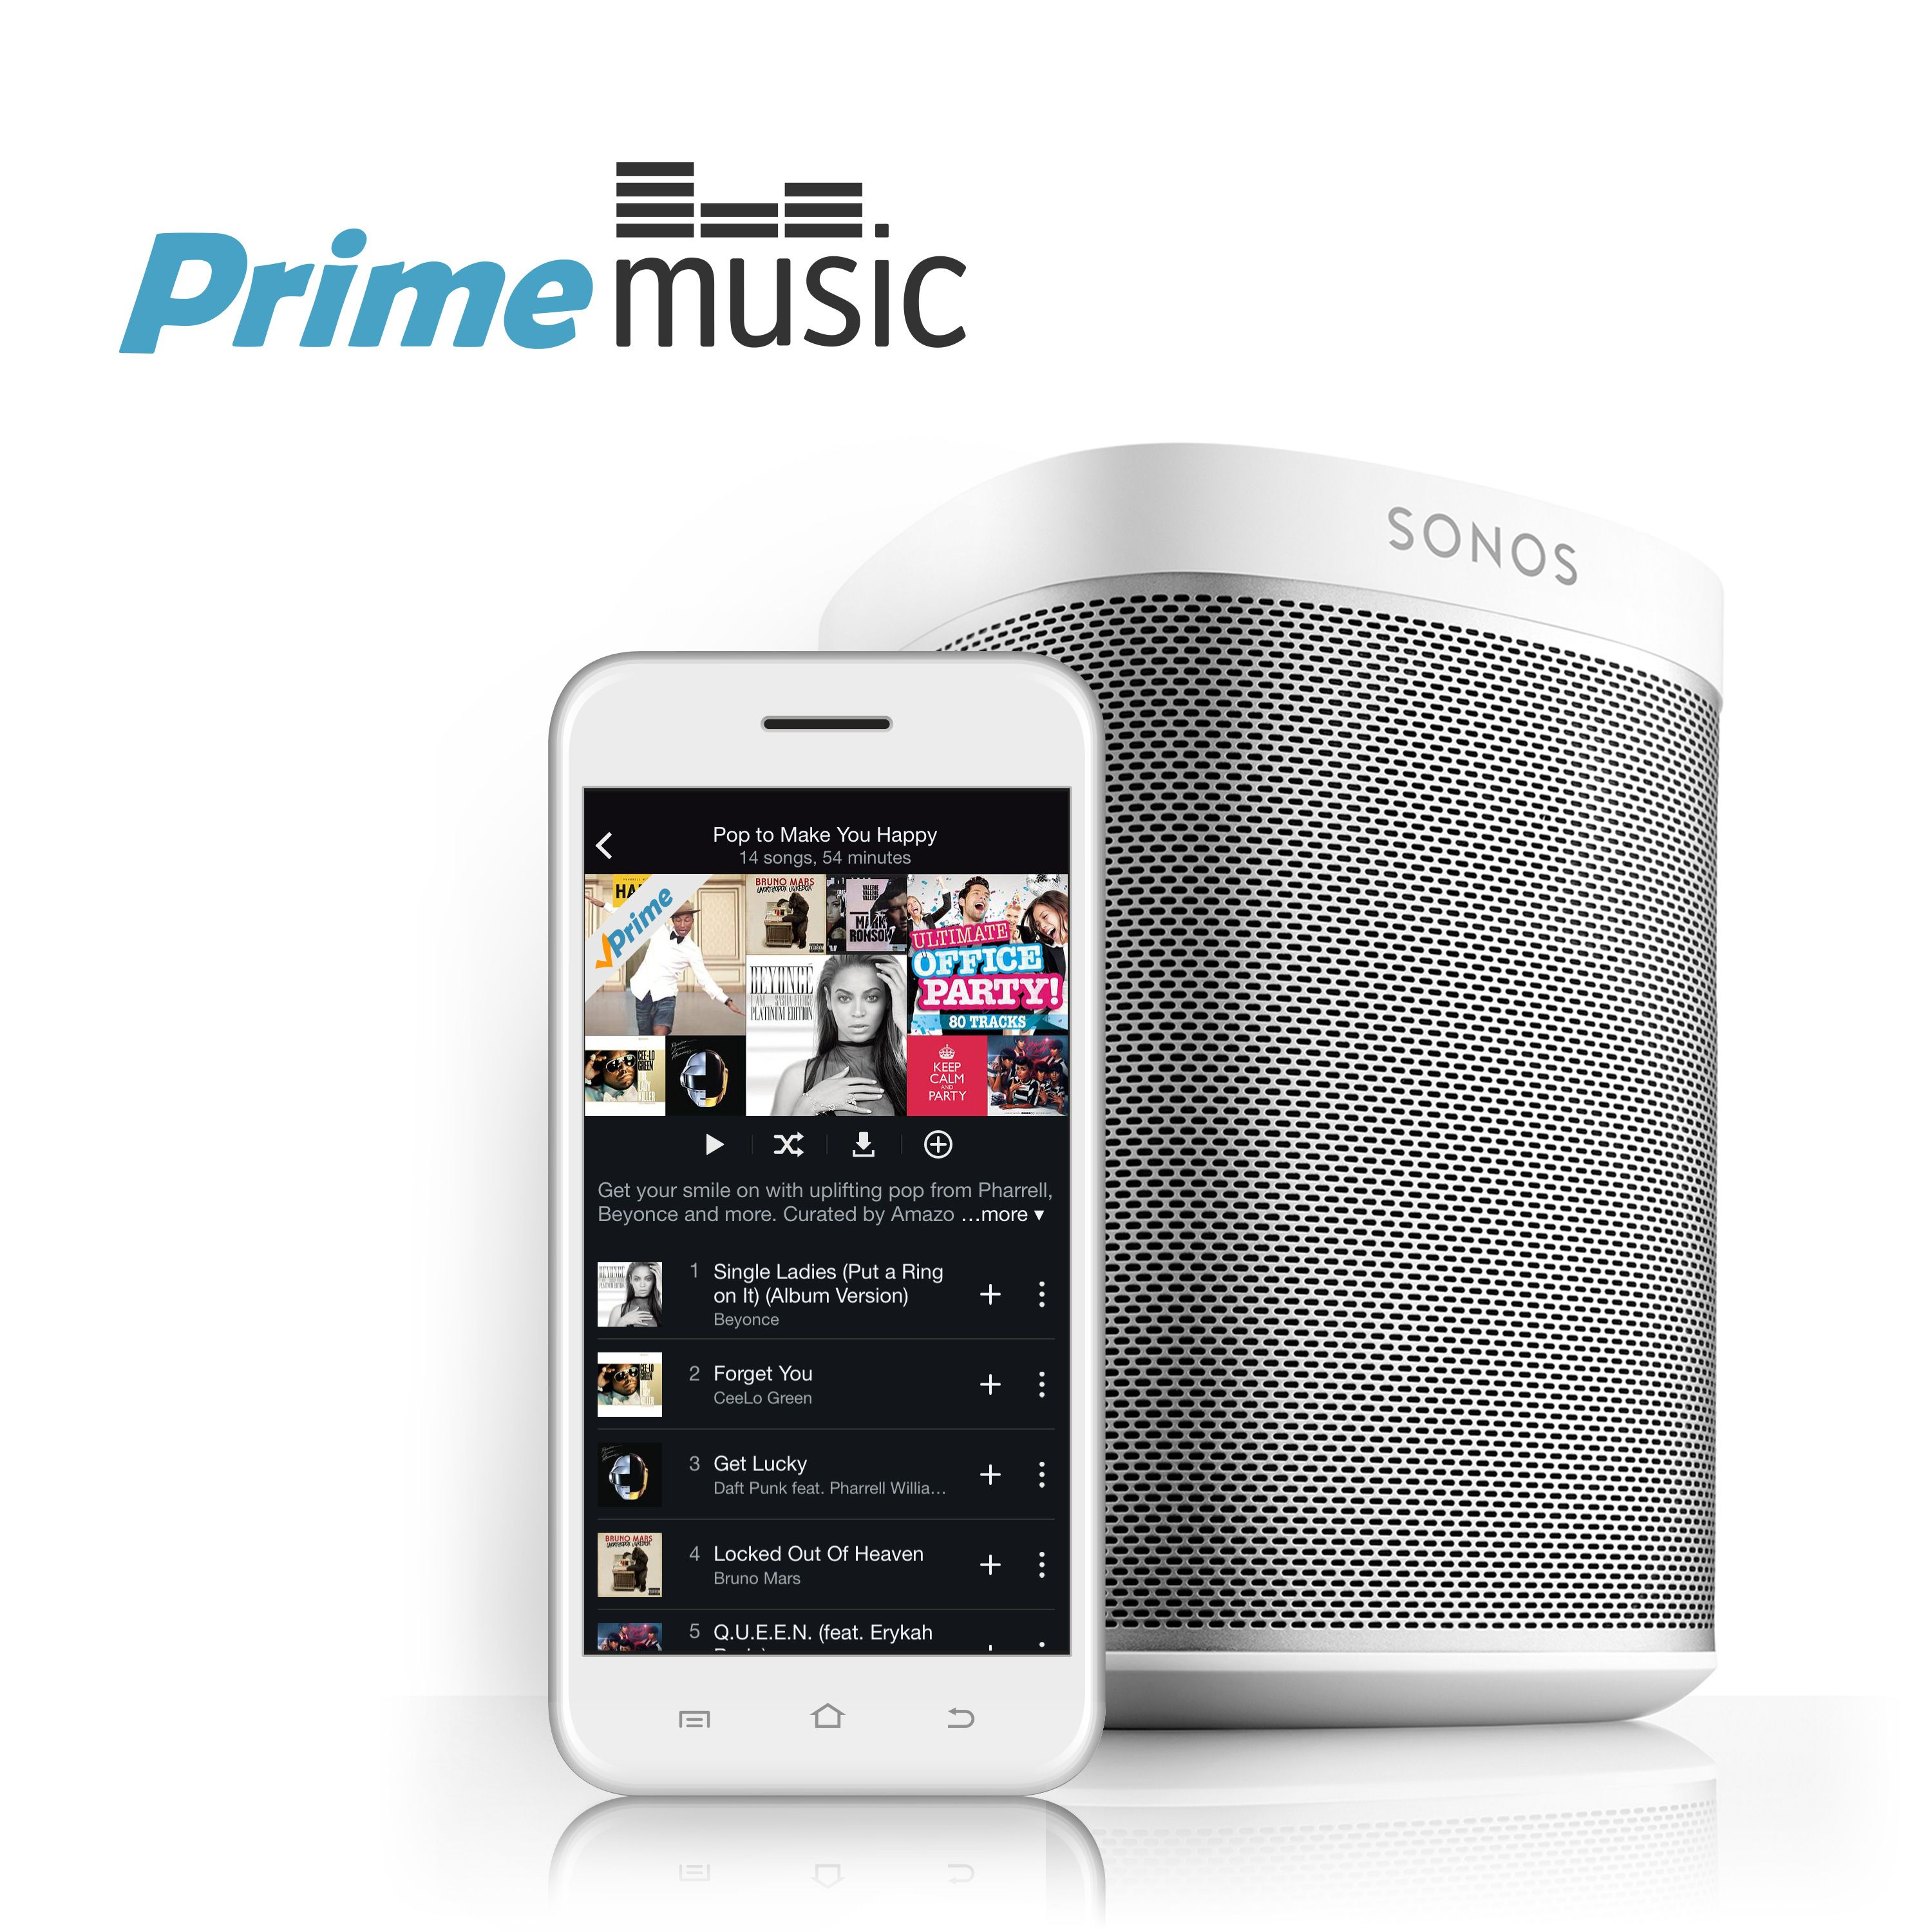 Amazon Music Sonos Amazon Prime Music Joins Spotify Apple Music And The Rest On Sonos